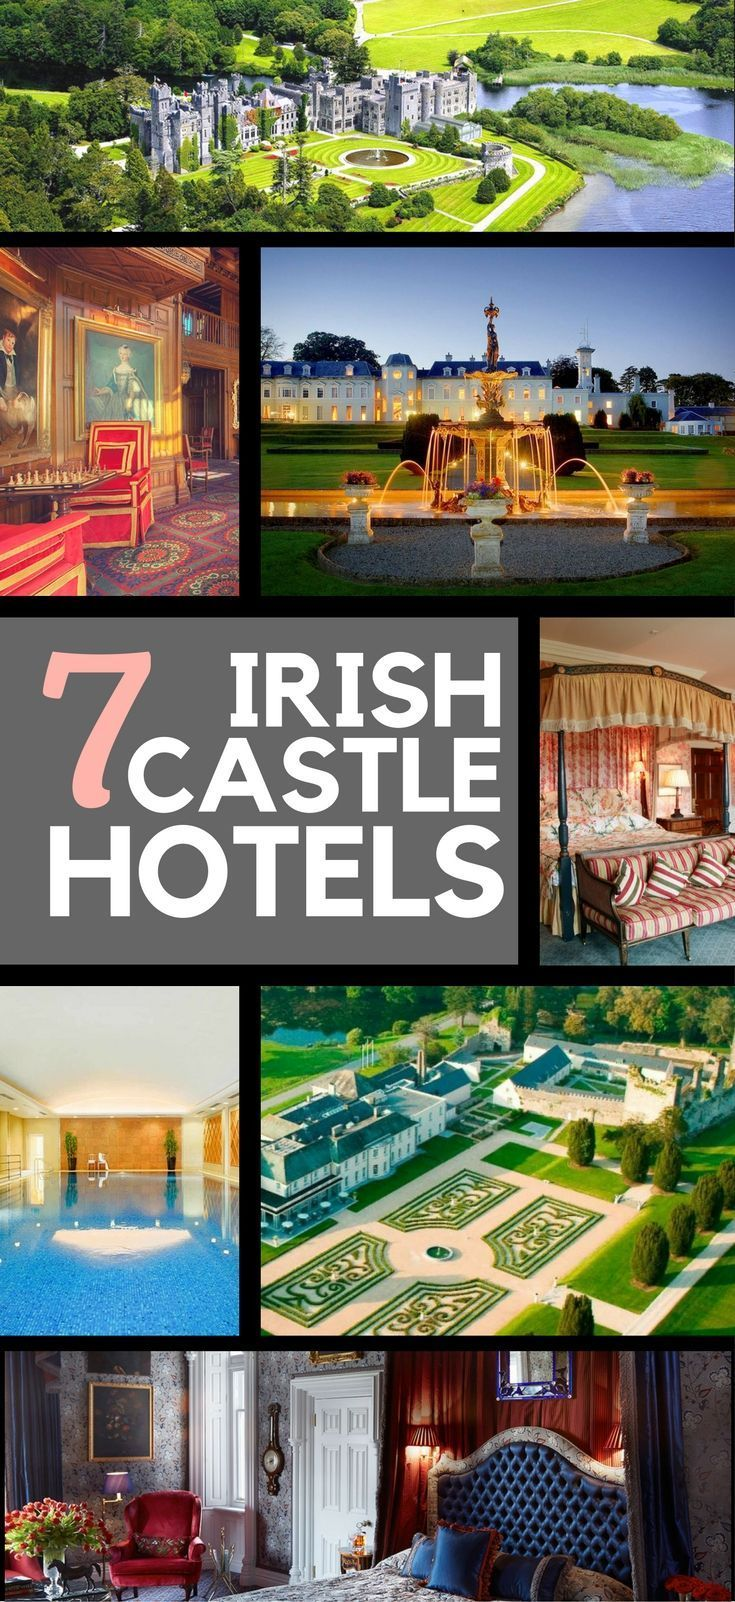 7 family-friendly luxury castle hotels of Ireland will provide a fairy tale Ireland vacation.